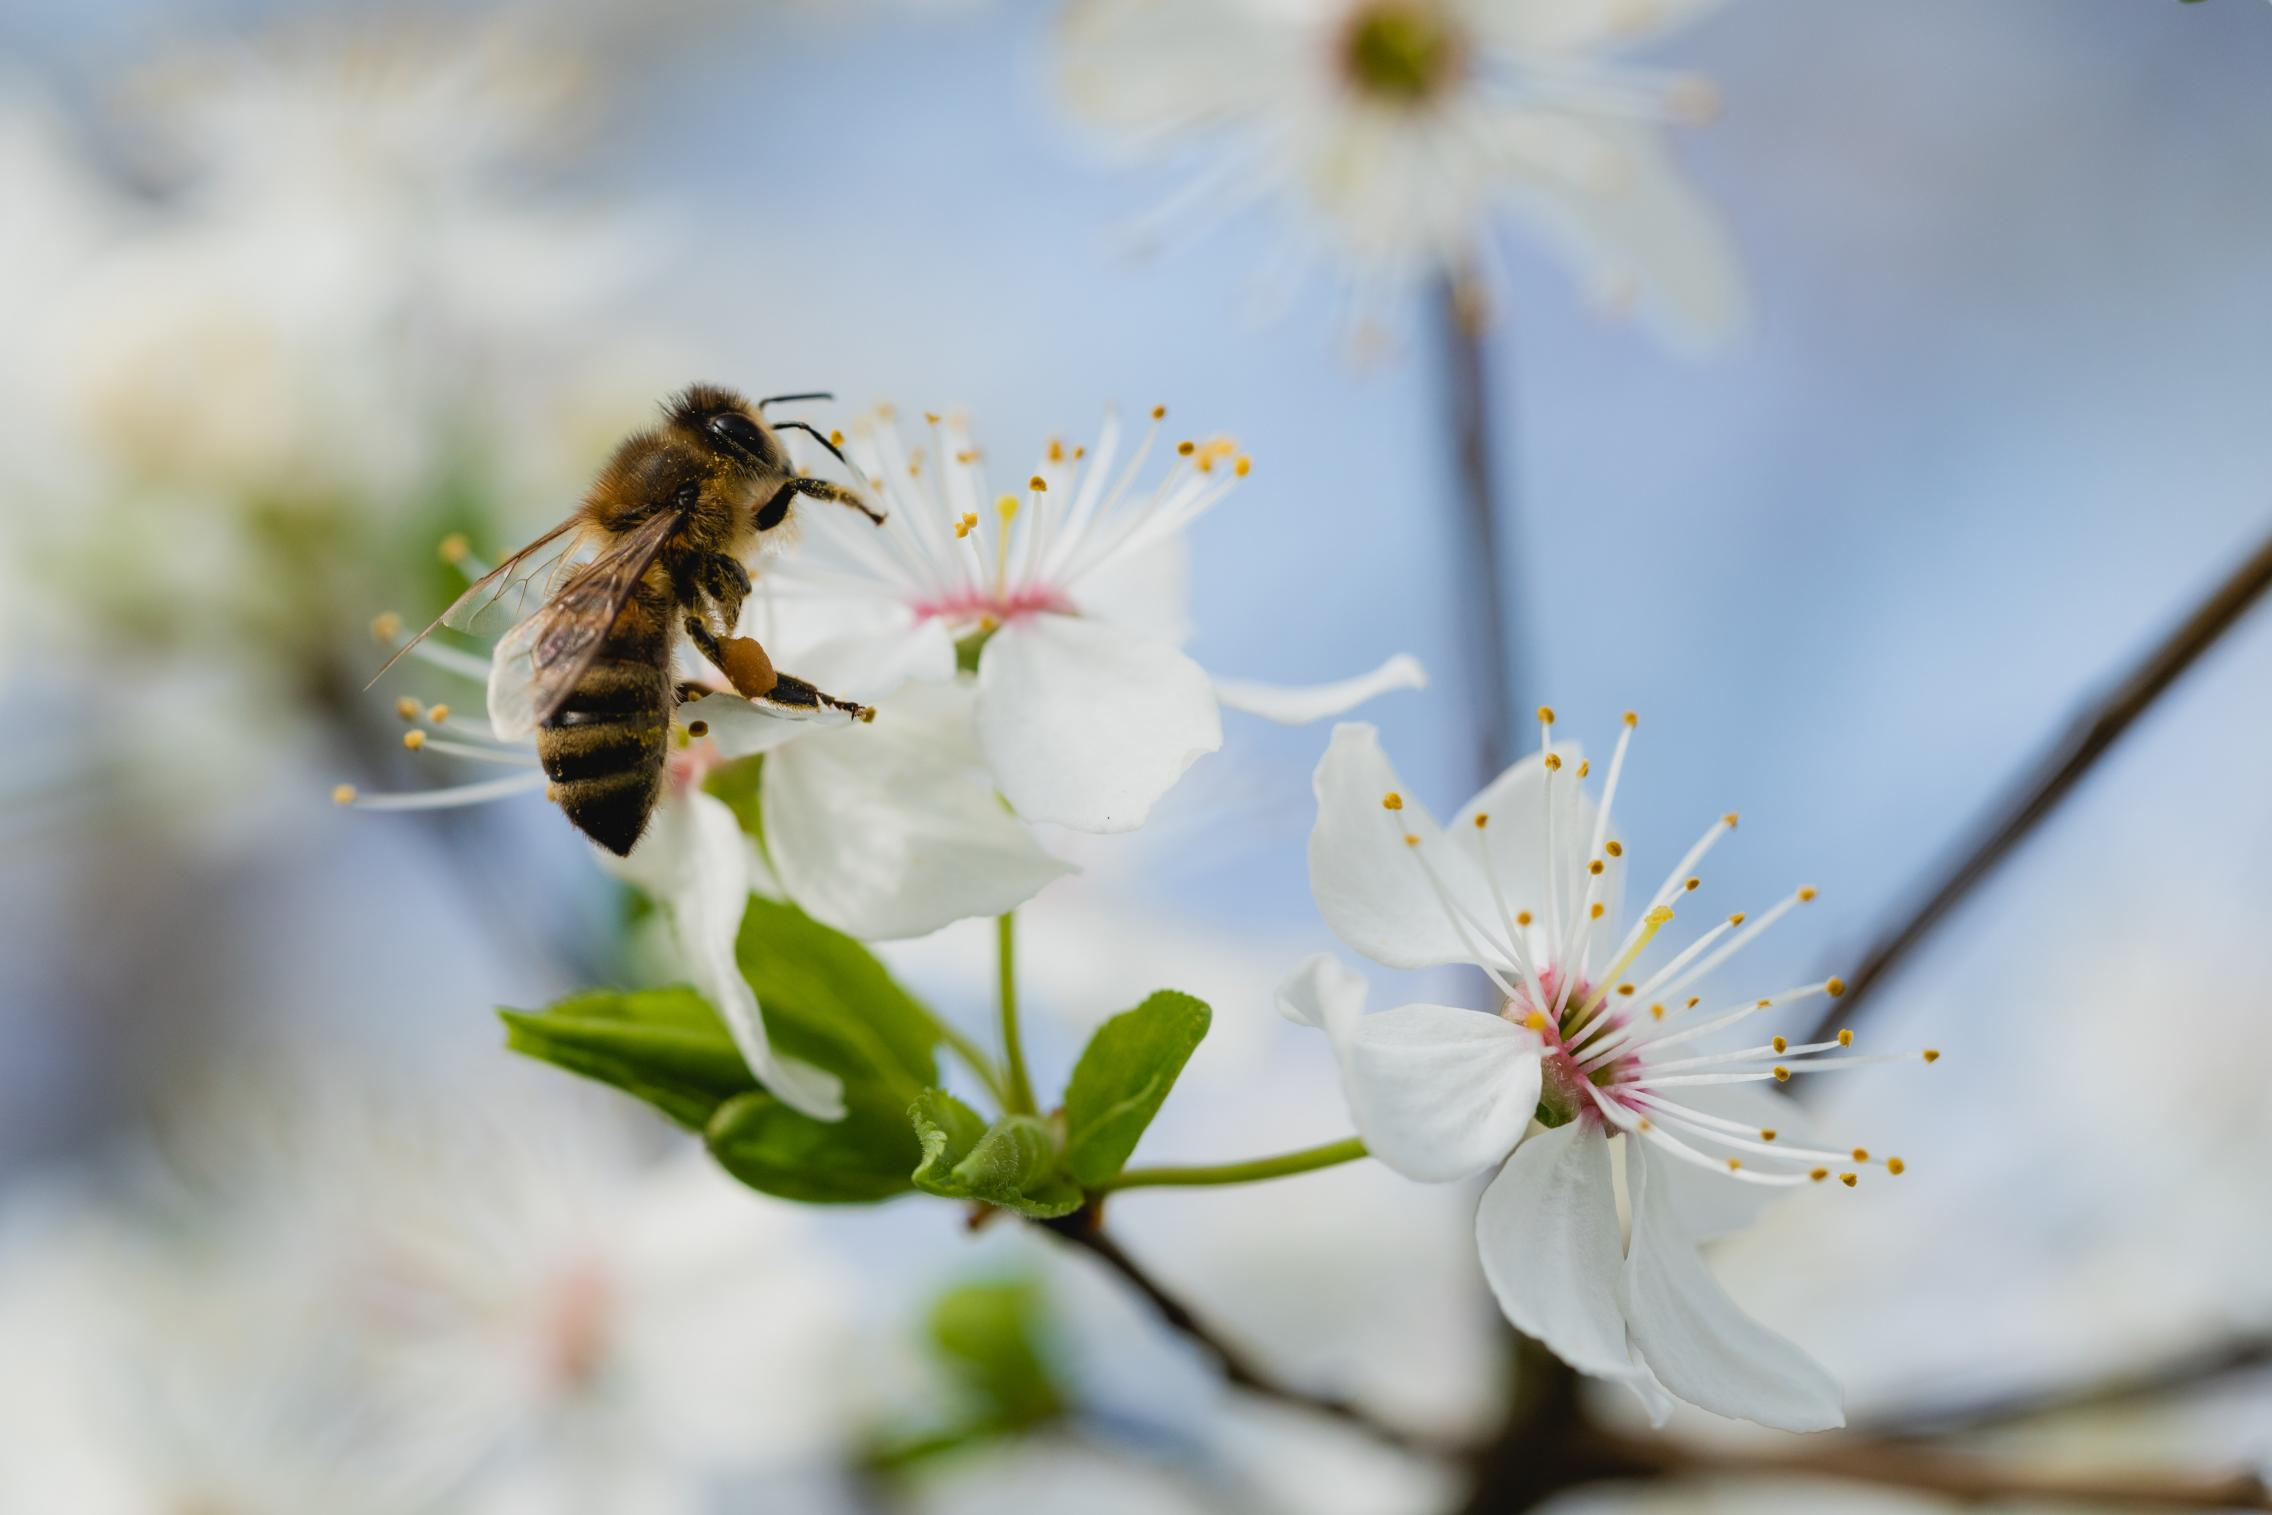 Protecting crops by preserving their pollinators